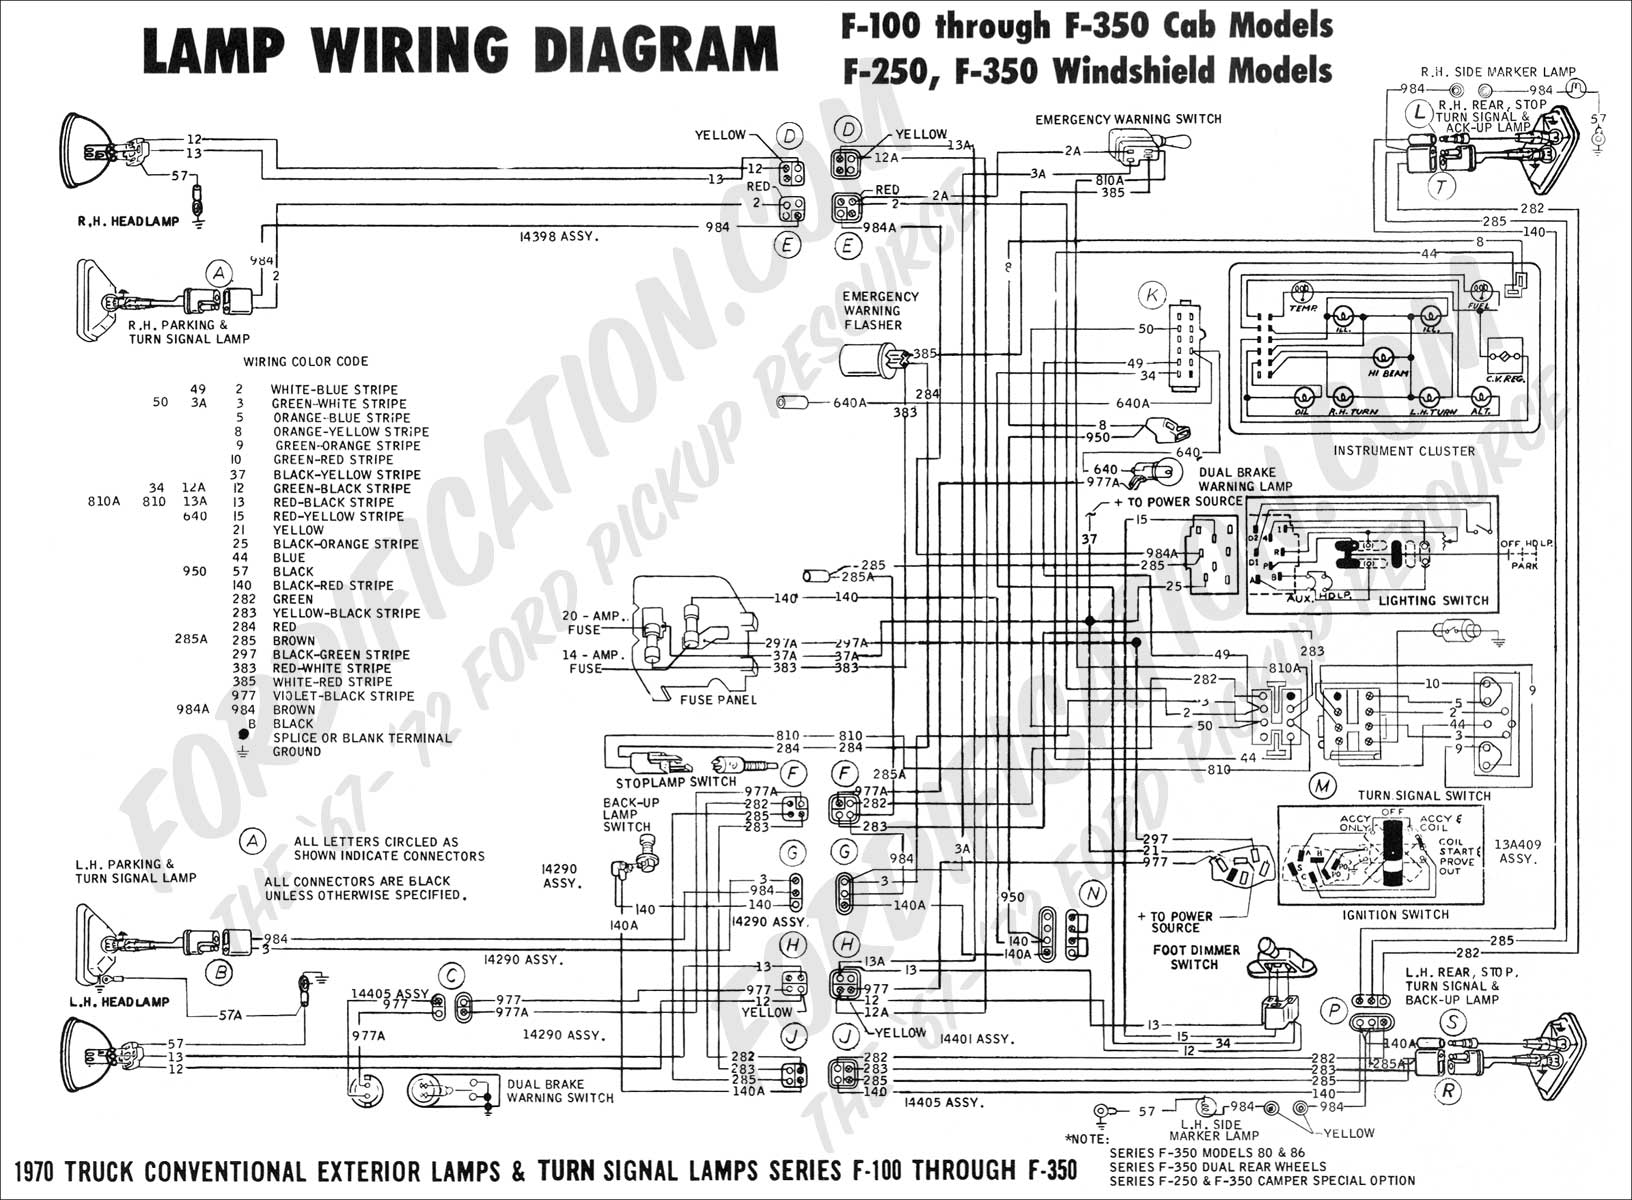 2002 Ford Ranger Xlt Fuse Diagram Data Wiring 2001 Edge Box 97 Schematics